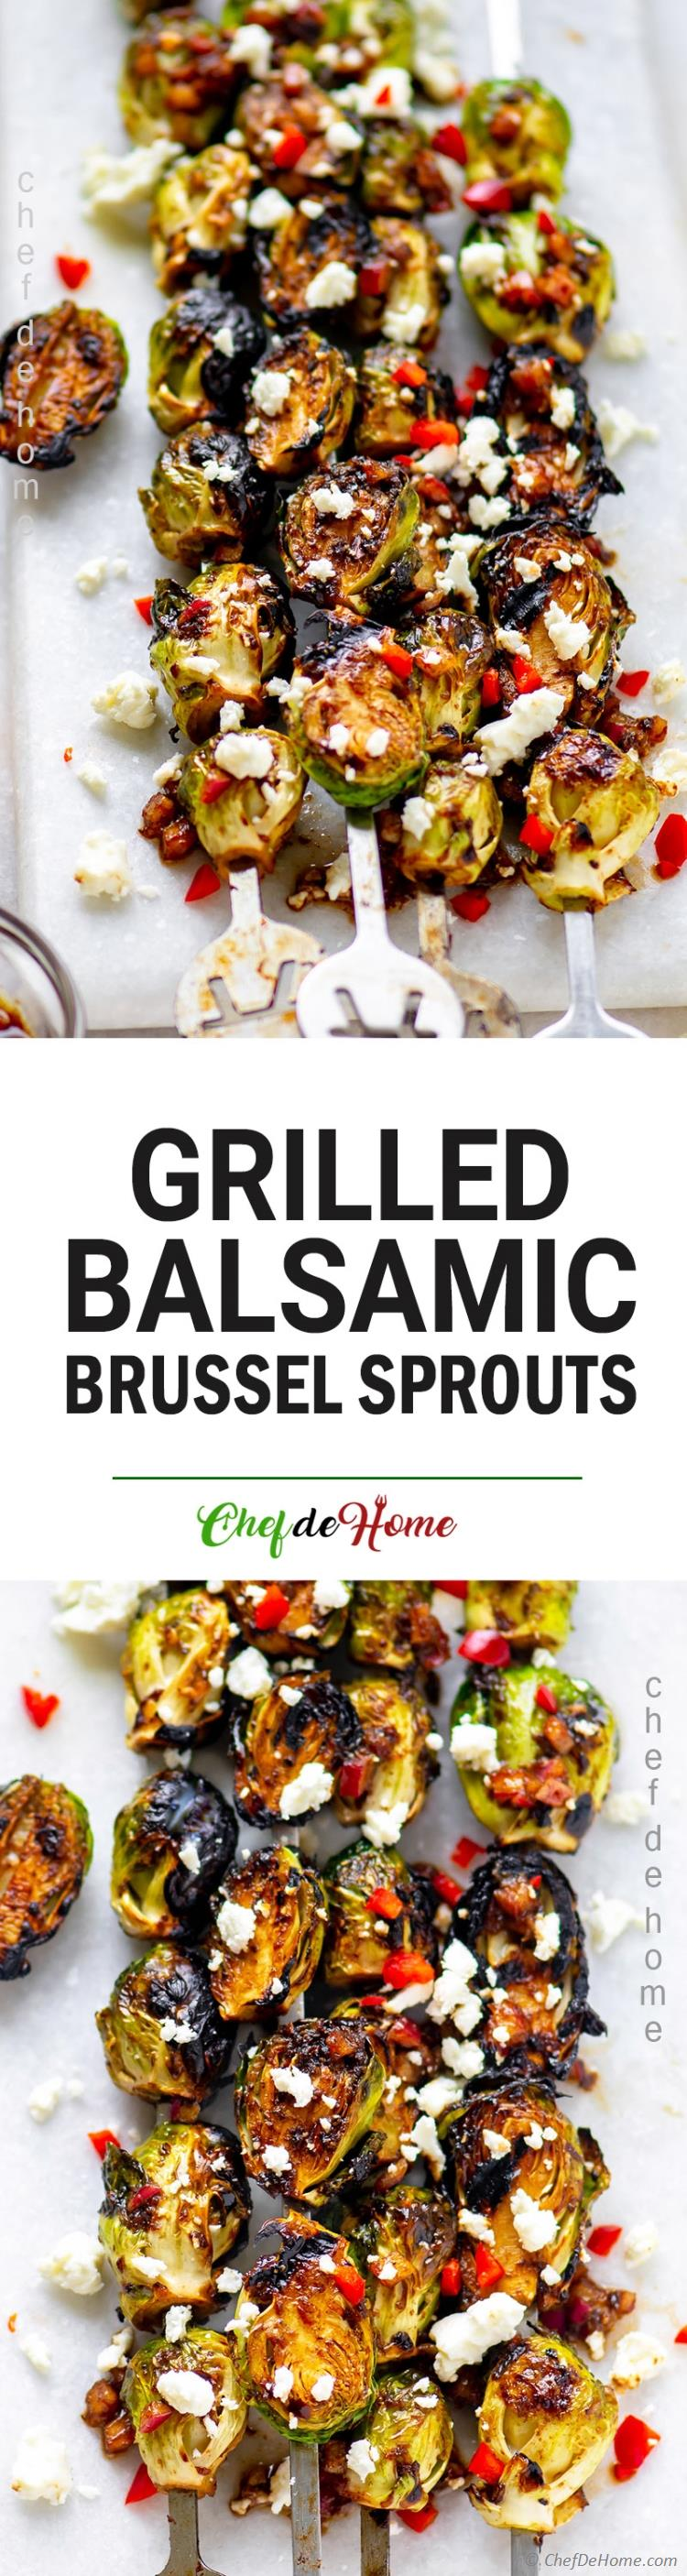 Crispy Grilled Brussel Sprouts Recipe